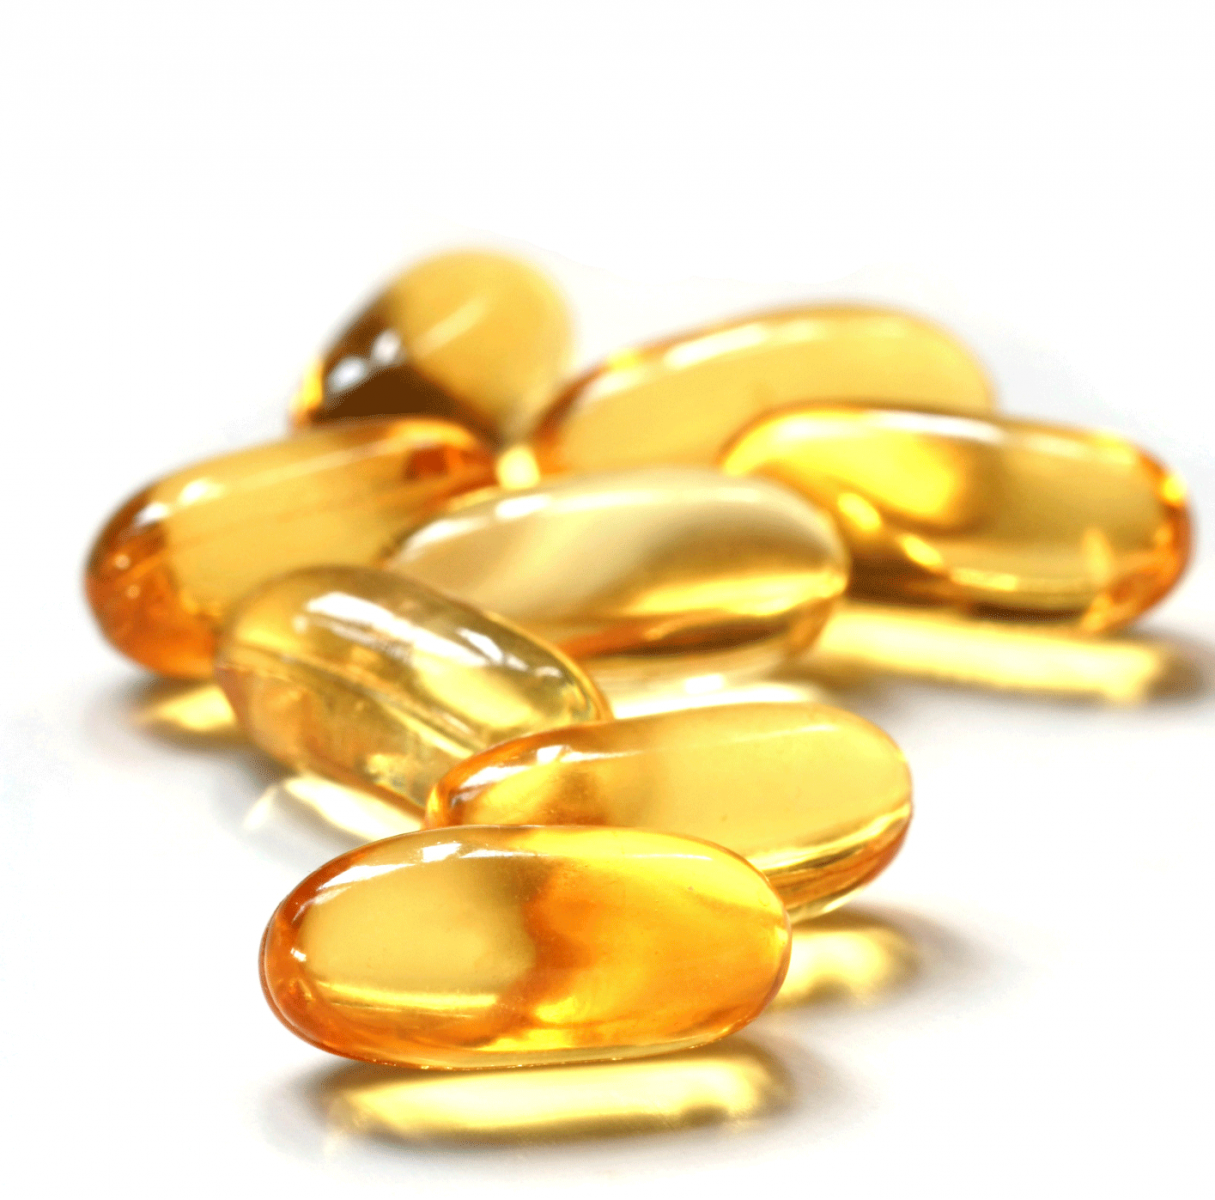 Some studies have shown that taking vitamin E supplements may slow the ...